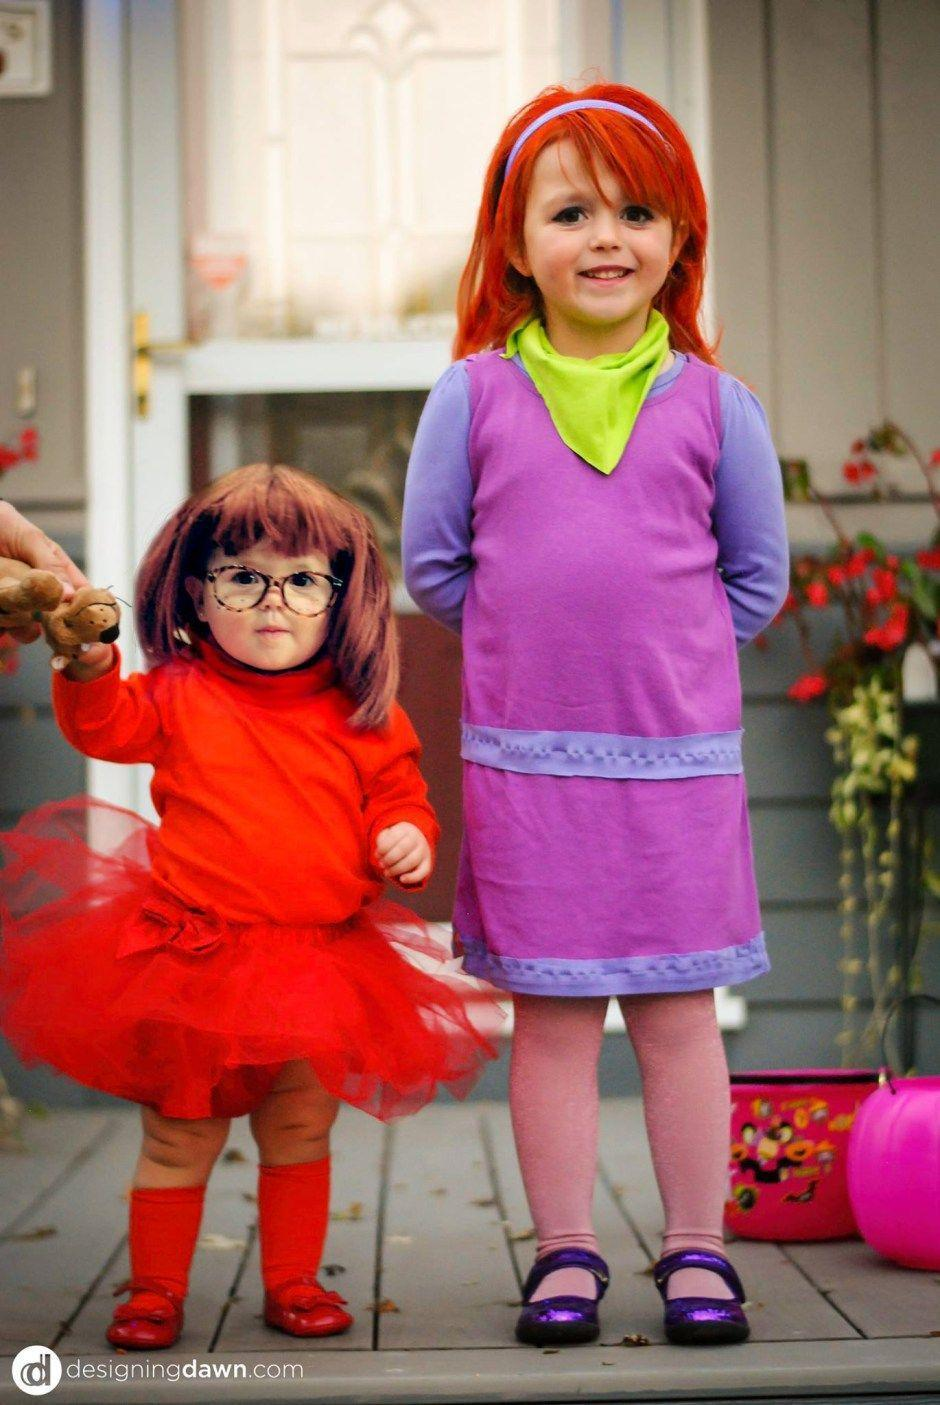 """<p>How sweet are these sisters as two members of the <a href=""""https://www.countryliving.com/diy-crafts/g22500148/70s-costumes/"""" rel=""""nofollow noopener"""" target=""""_blank"""" data-ylk=""""slk:'70s cartoon"""" class=""""link rapid-noclick-resp"""">'70s cartoon</a>?</p><p><strong>Get the tutorial at <a href=""""http://designingdawn.com/happy-halloween-diy-scooby-doo-gang-costumes/"""" rel=""""nofollow noopener"""" target=""""_blank"""" data-ylk=""""slk:Designing Dawn"""" class=""""link rapid-noclick-resp"""">Designing Dawn</a>.</strong></p><p><a class=""""link rapid-noclick-resp"""" href=""""https://www.amazon.com/Coxlures-Girls-Ballet-Tutu-Red/dp/B002GZPTTO?tag=syn-yahoo-20&ascsubtag=%5Bartid%7C10050.g.21530121%5Bsrc%7Cyahoo-us"""" rel=""""nofollow noopener"""" target=""""_blank"""" data-ylk=""""slk:SHOP RED TUTU"""">SHOP RED TUTU</a></p>"""